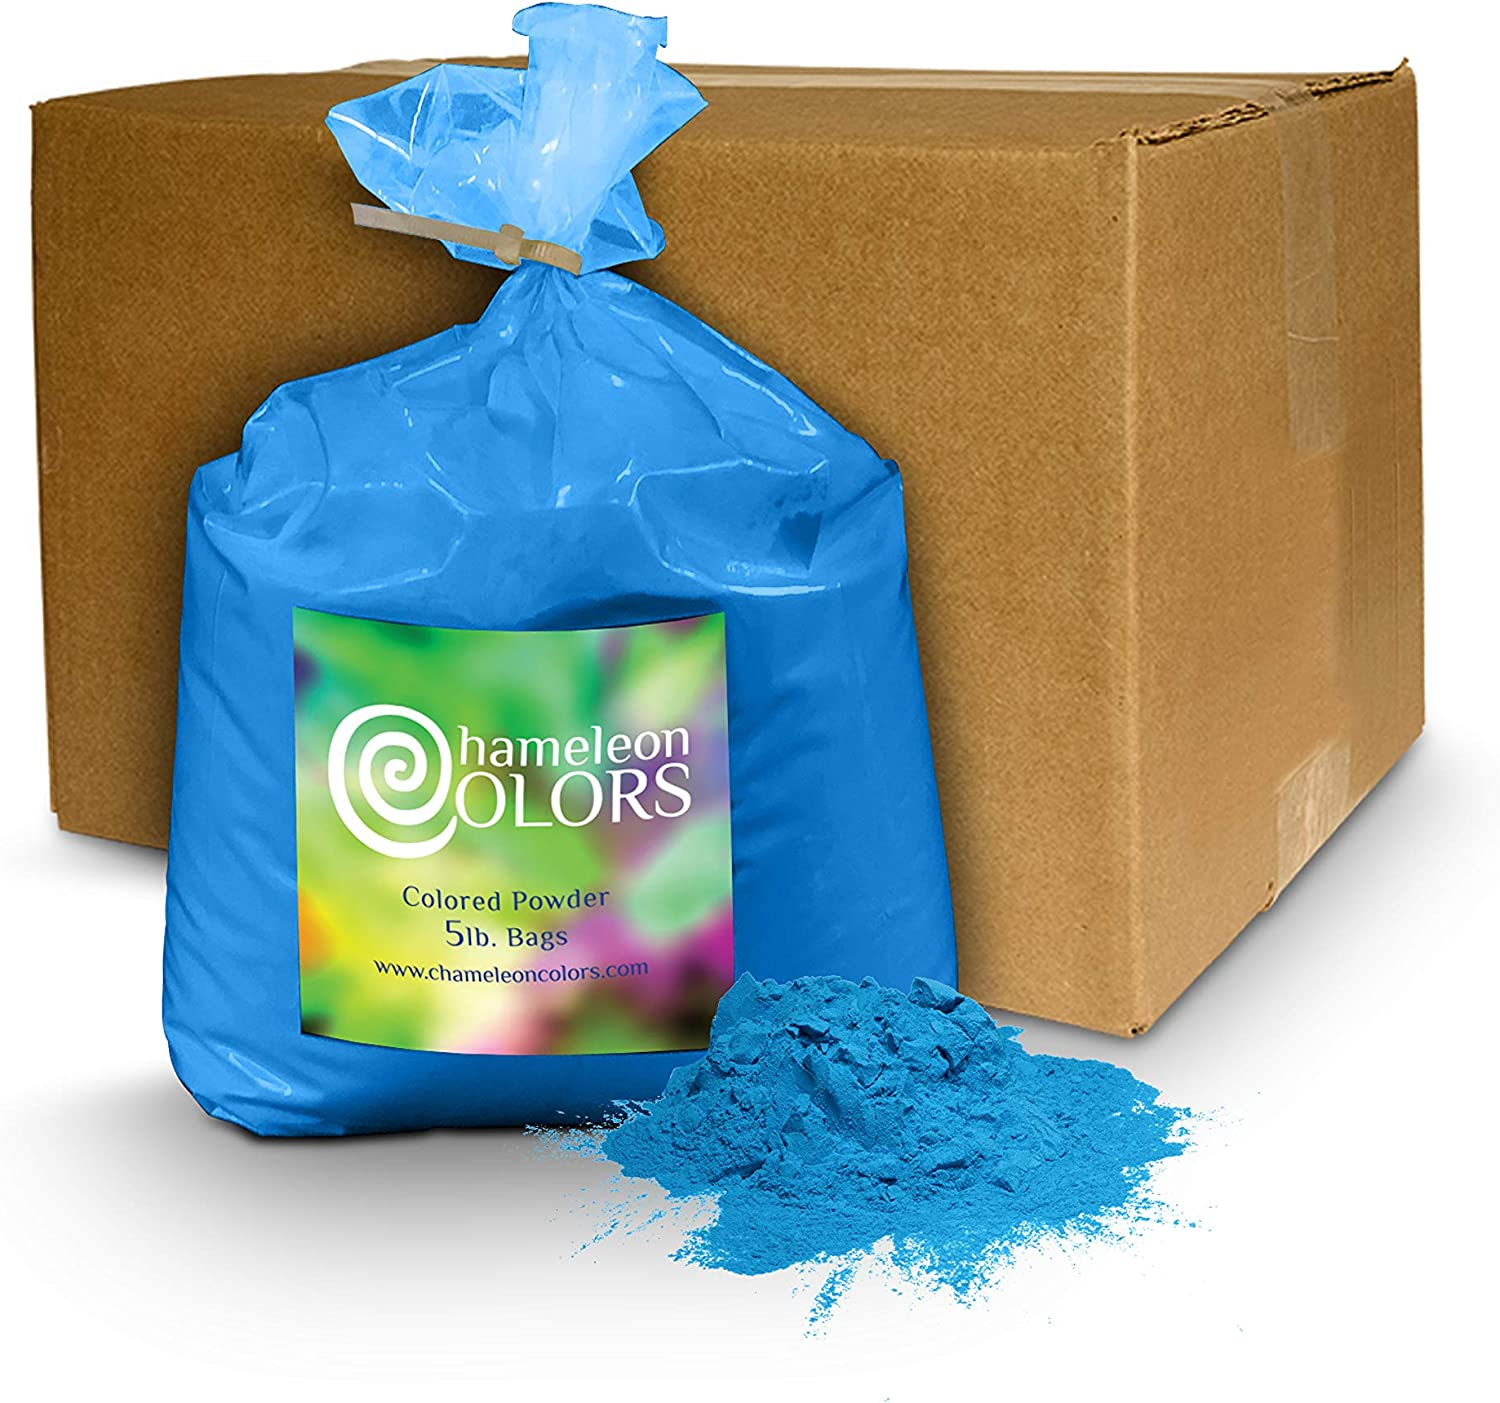 Holi Powder Gender Reveal by Chameleon Colors – 5lb Blue. Same premium, authentic product used for a color races, 5k, etc.